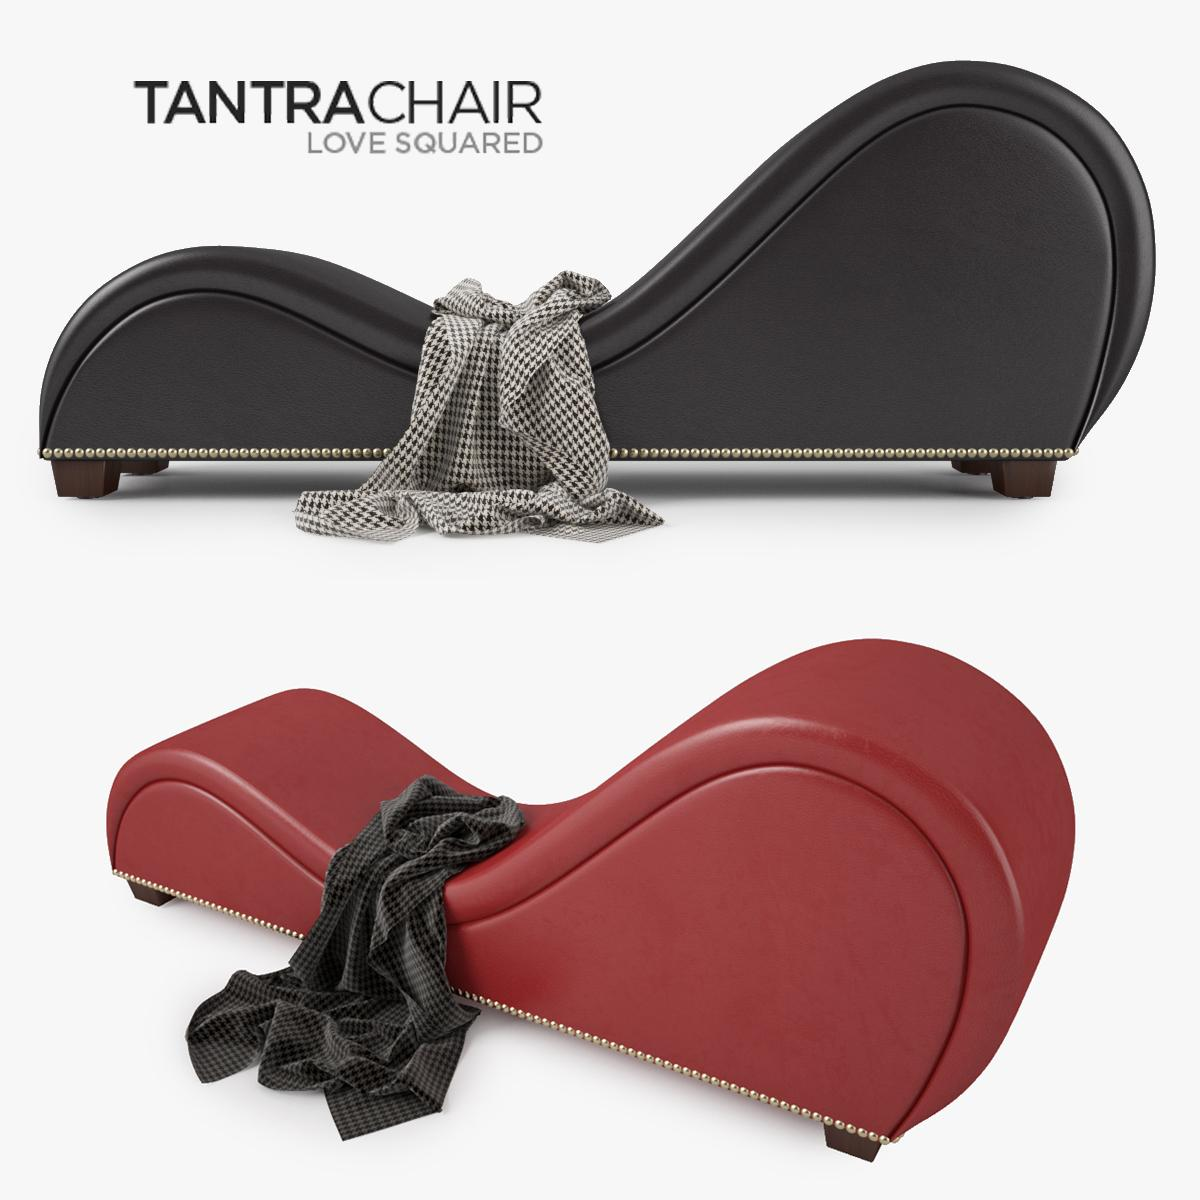 tantra chair ebay covers for hire roodepoort furniture love making  roselawnlutheran